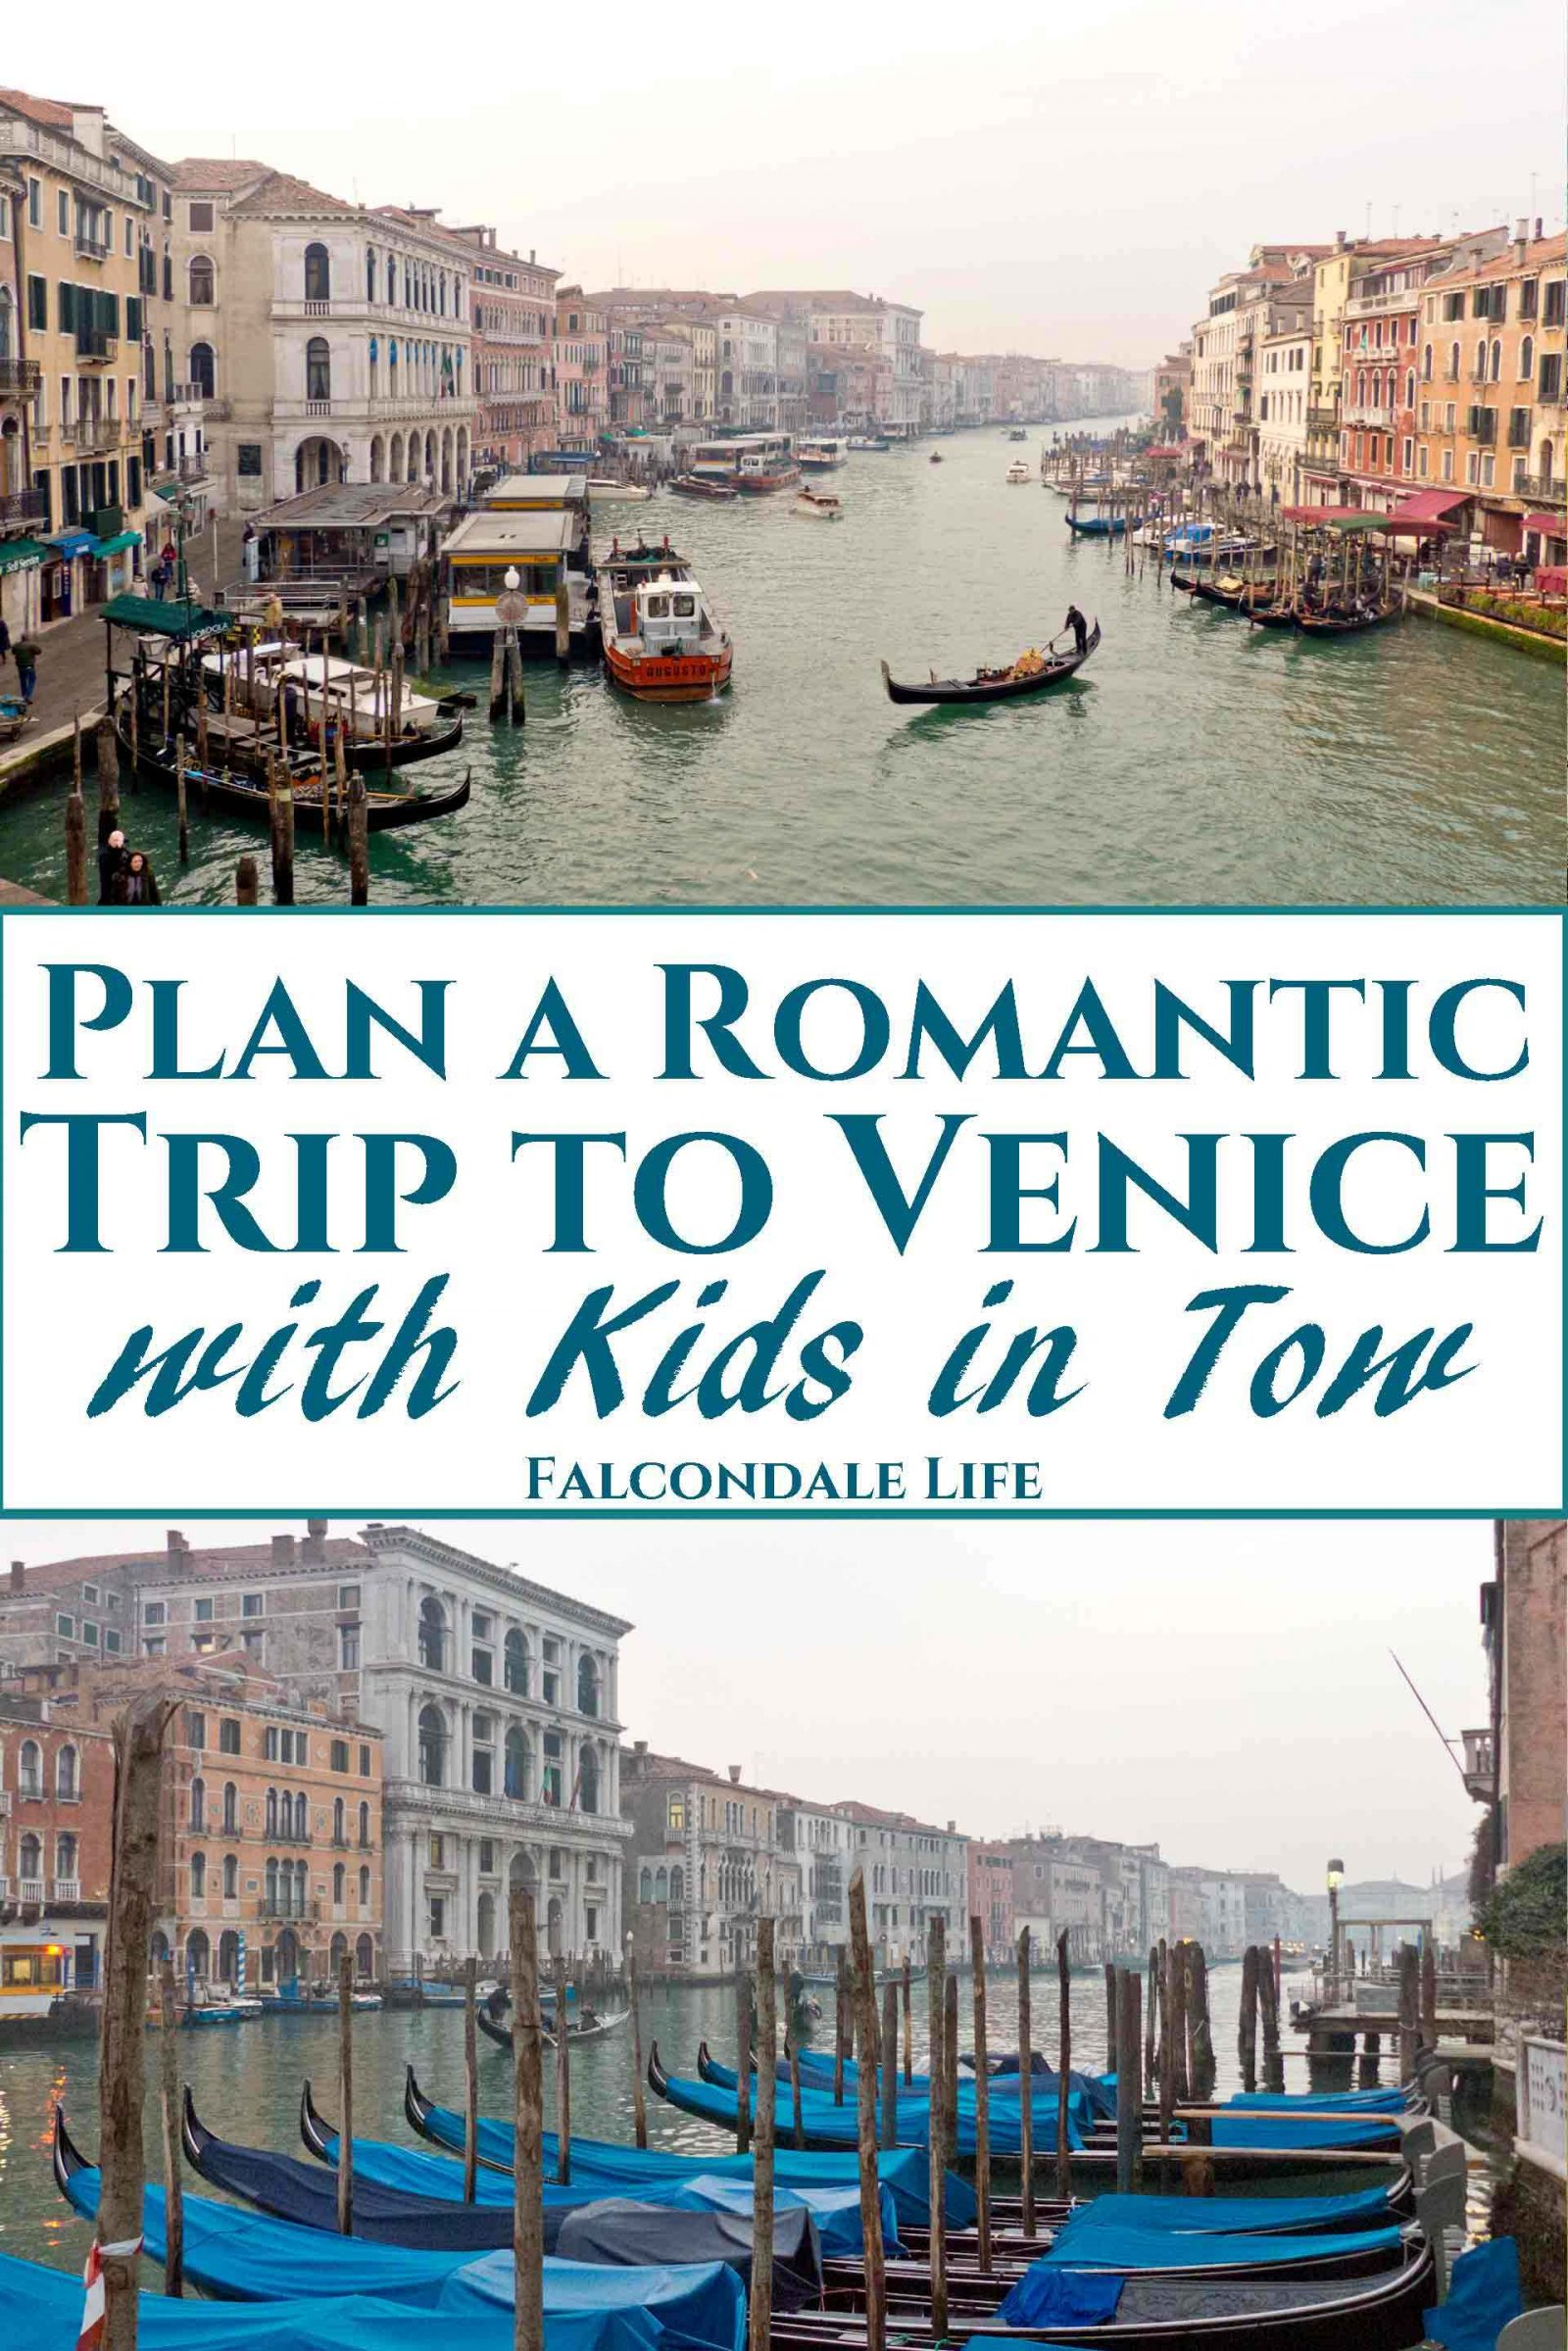 Can parents find romance in Venice with kids in tow or is it best to go without the children? Tips for Mums and Dads visiting the world's most romantic city. Plan a romantic trip to Venice with kids in tow on Falcondale Life blog. Image description: Venice grand canal, 2 views and blog title.